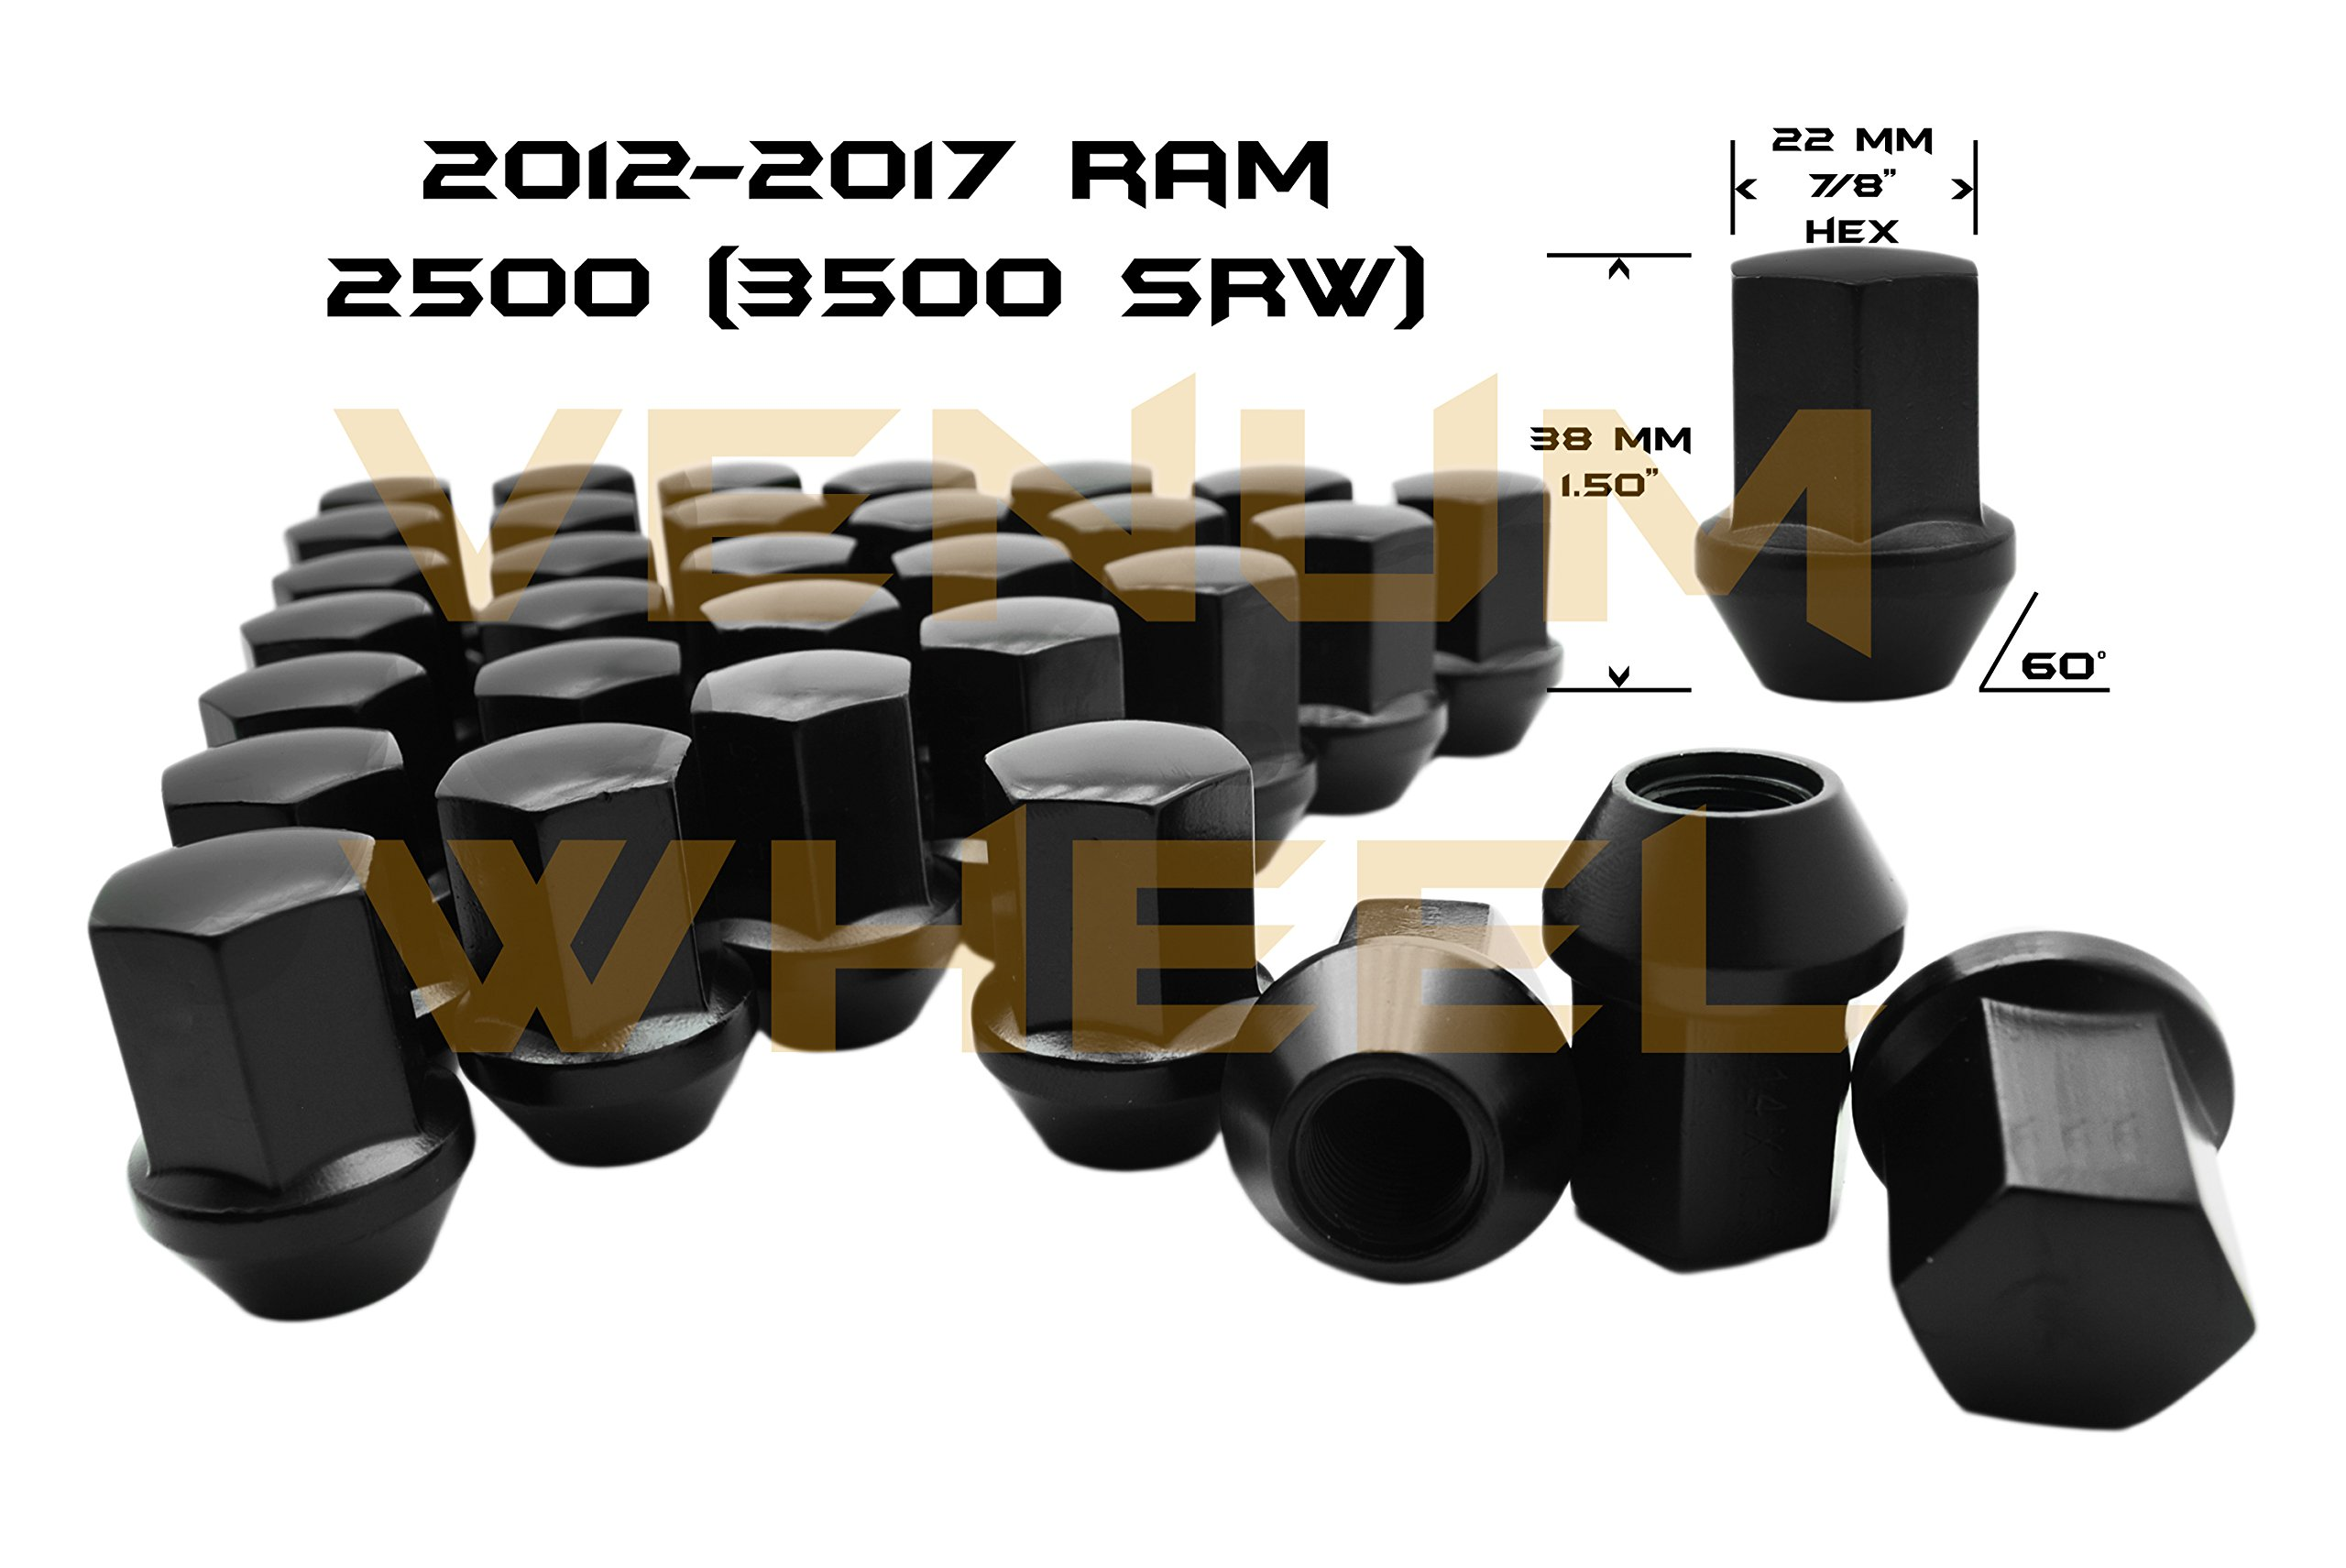 32 Pc 2012-2017 Ram 2500 Black OEM Factory Style Black Lug Nuts M14x1.5 W/ 22MM Hex Close End 1.5'' Tall 8x6.5'' New Models Made In USA by Venum wheel accessories